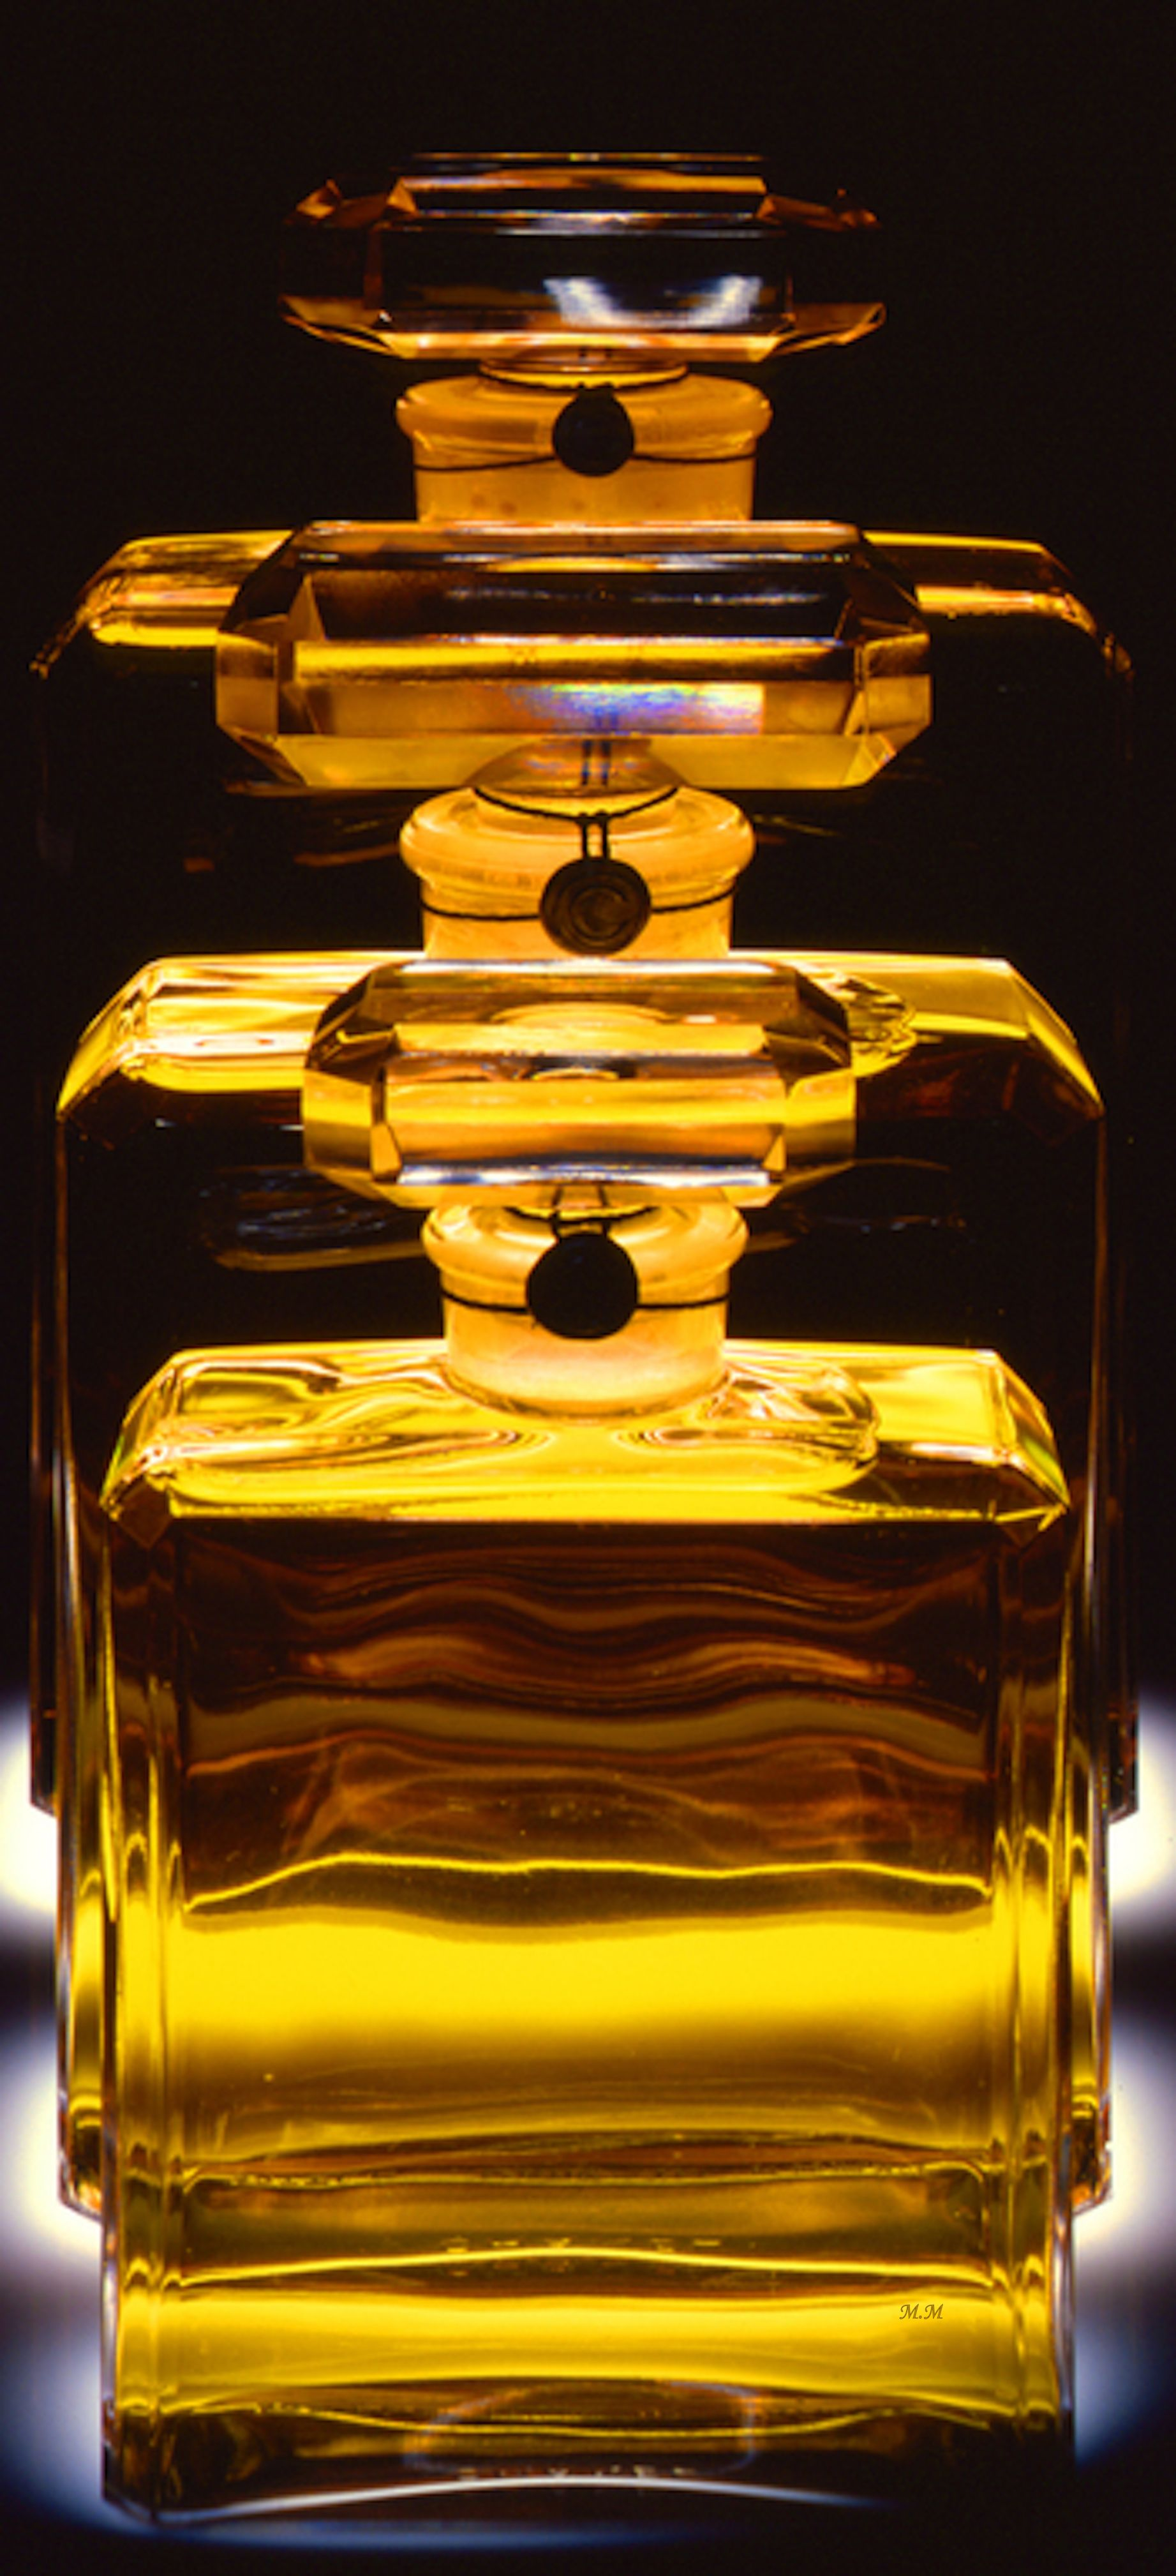 ~Chanel N°5 by Gilles Larrain   House of Beccaria#